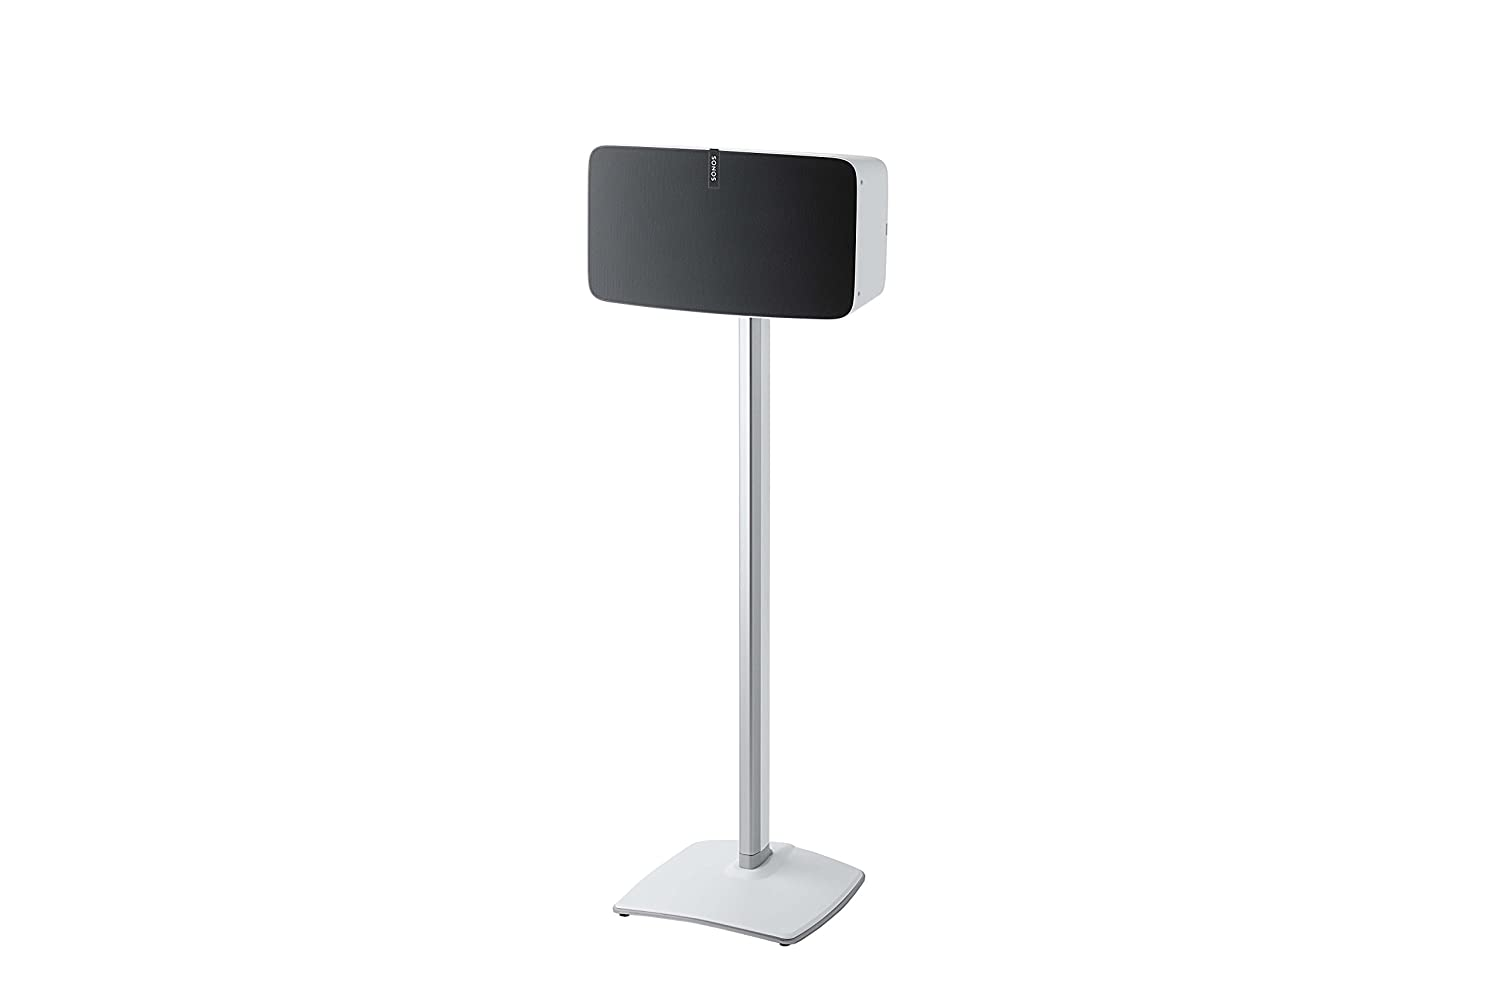 Sanus Wireless Speaker Stand for SONOS PLAY:5 - White WSS51-W2